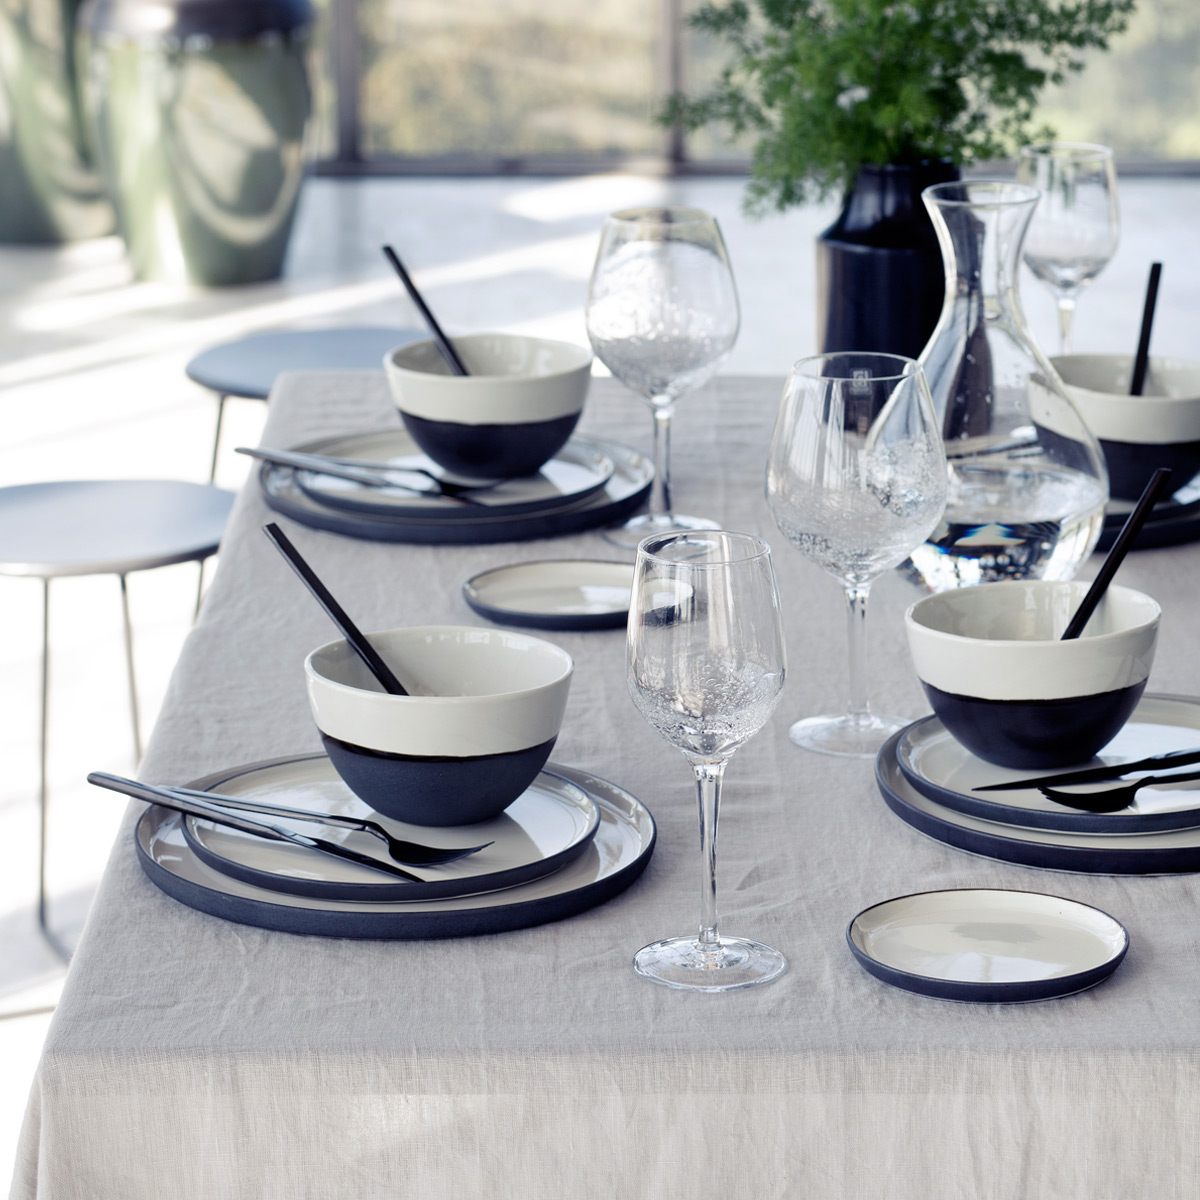 esrum-broste-dinnerplate-table-setting